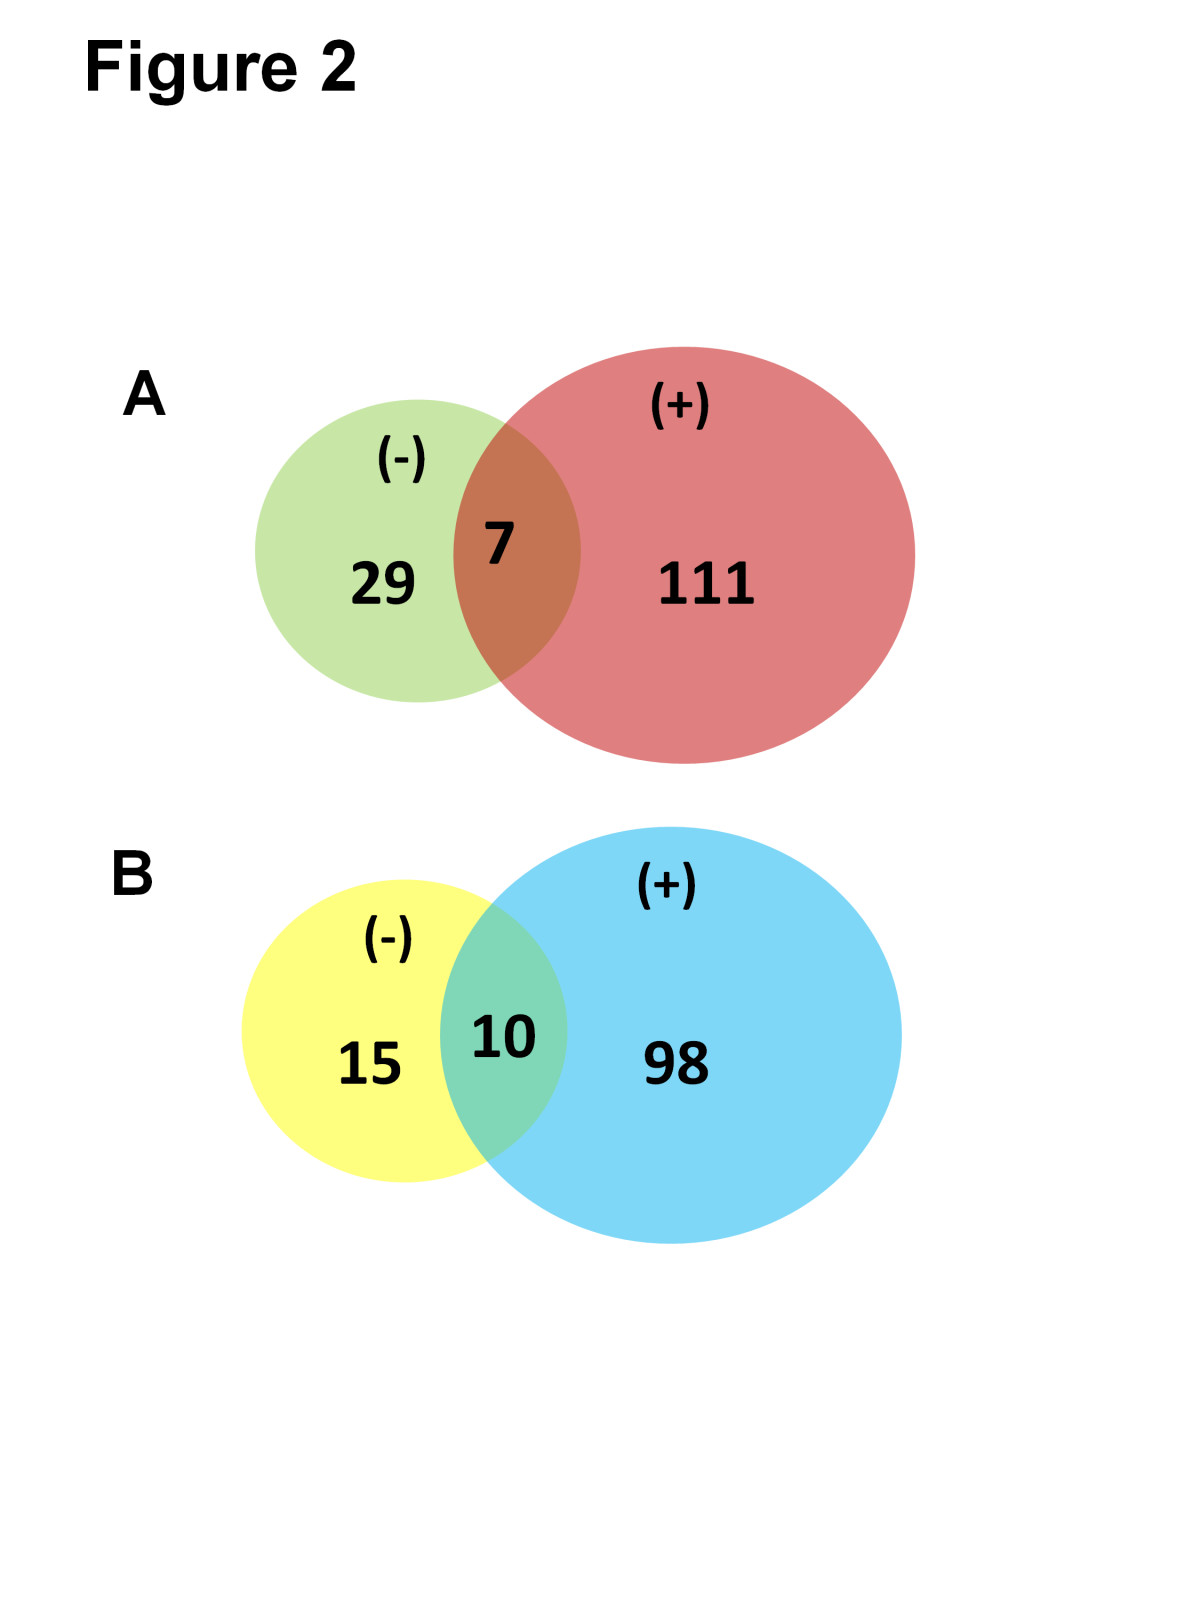 https://static-content.springer.com/image/art%3A10.1186%2F1477-5956-10-47/MediaObjects/12953_2012_Article_384_Fig2_HTML.jpg